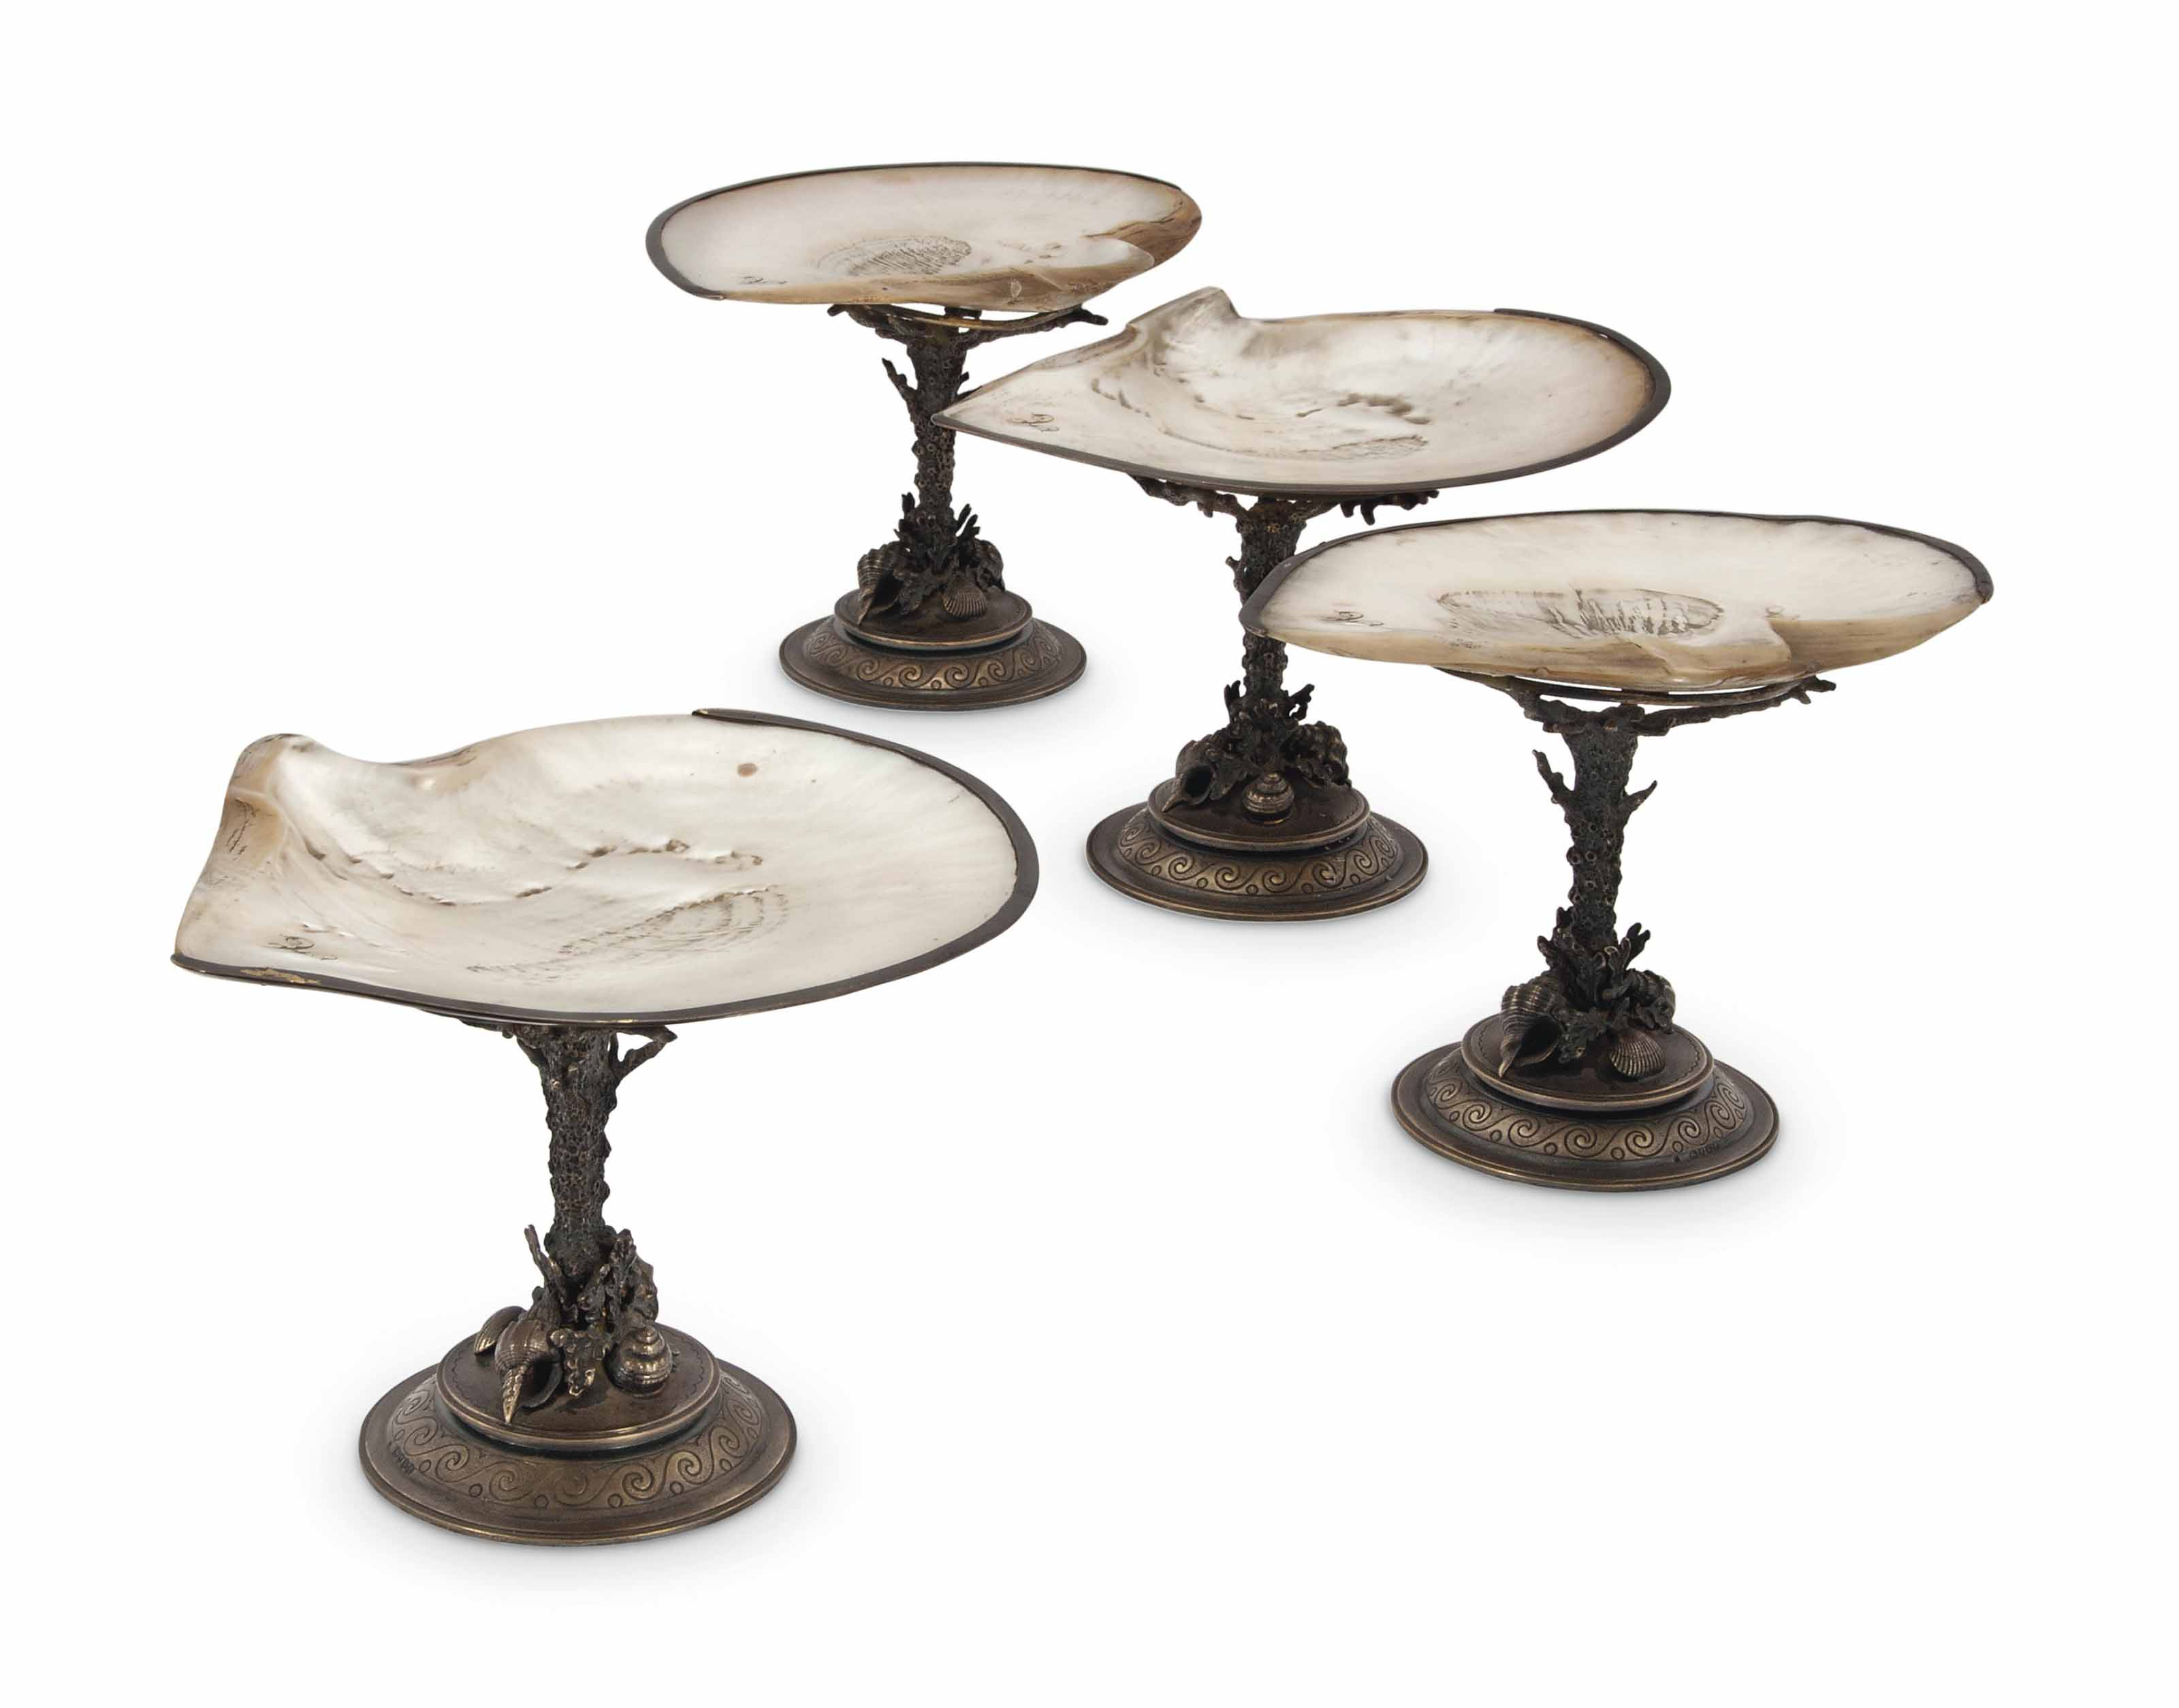 A SET OF FOUR VICTORIAN SILVER-GILT MOUNTED SHELL DESSERT-STANDS